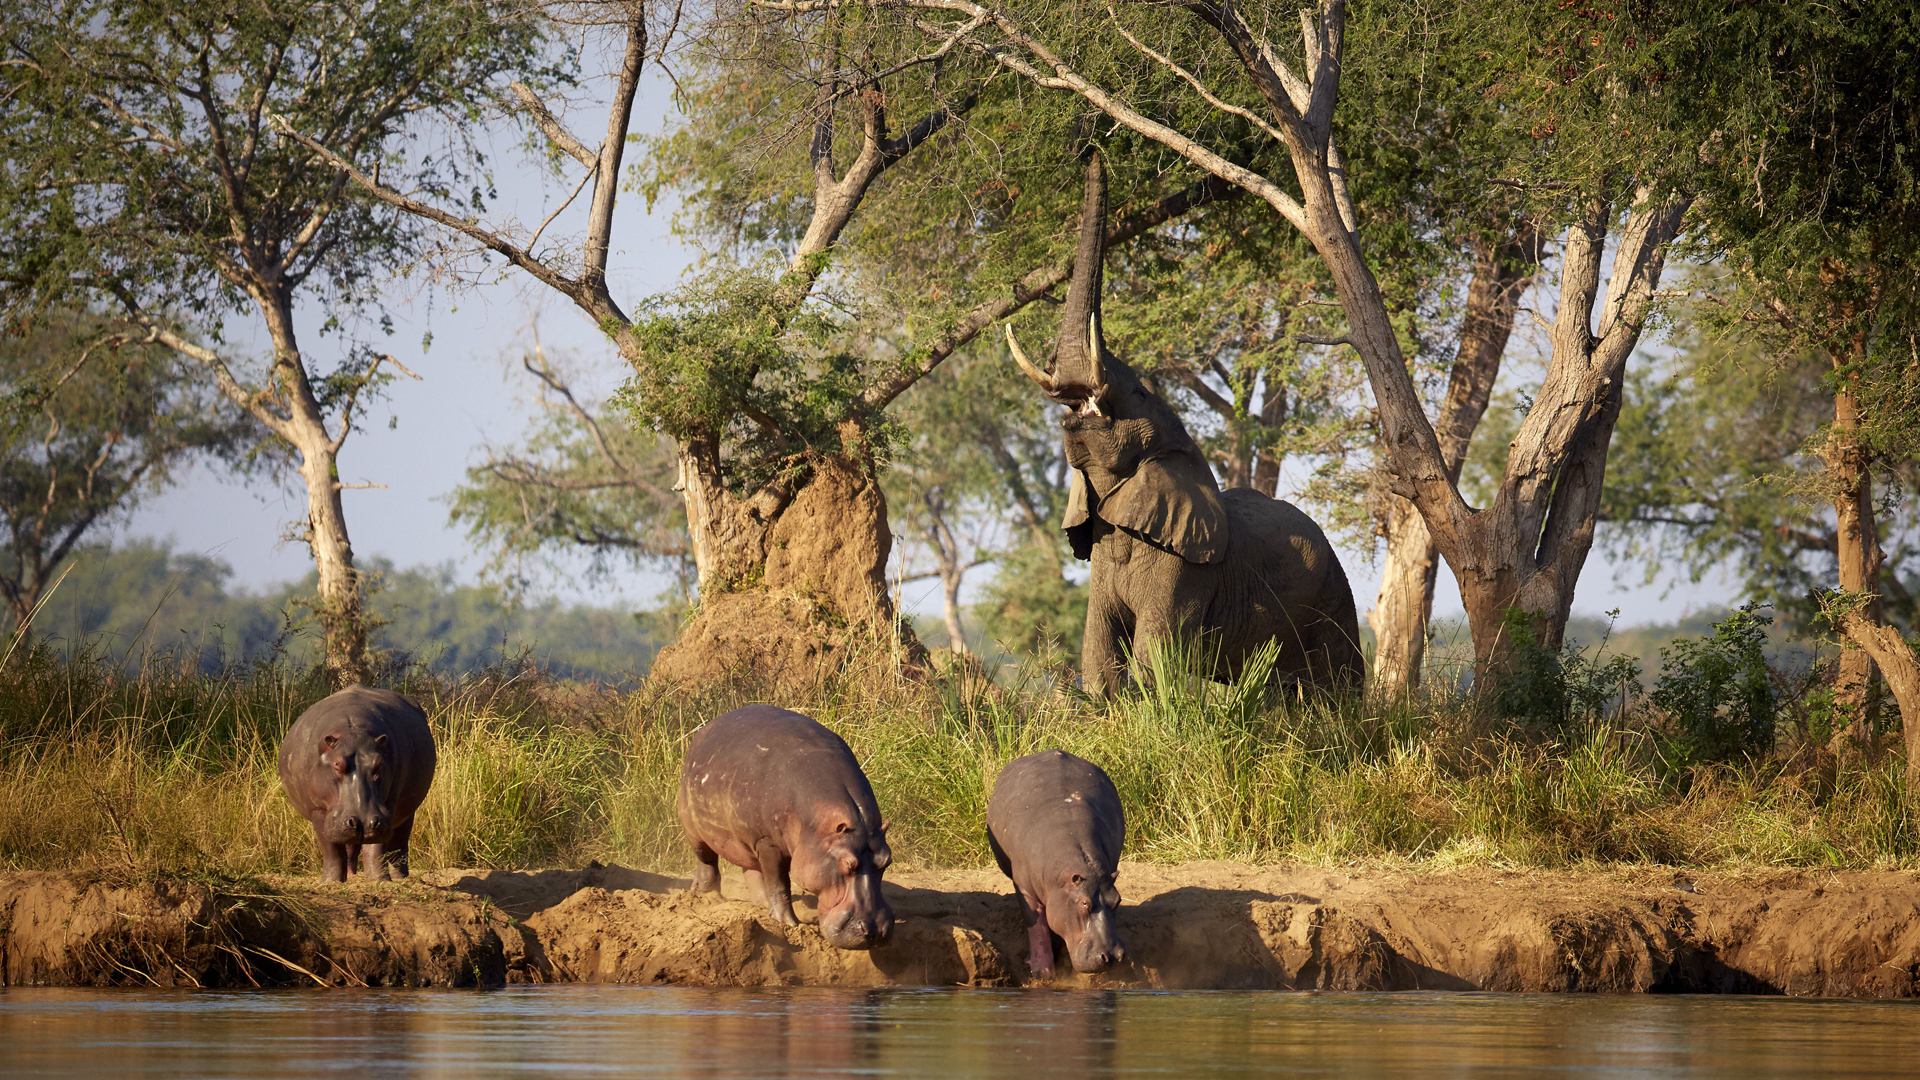 zambia regions header time + tide chongwe elephant reaching and hippos